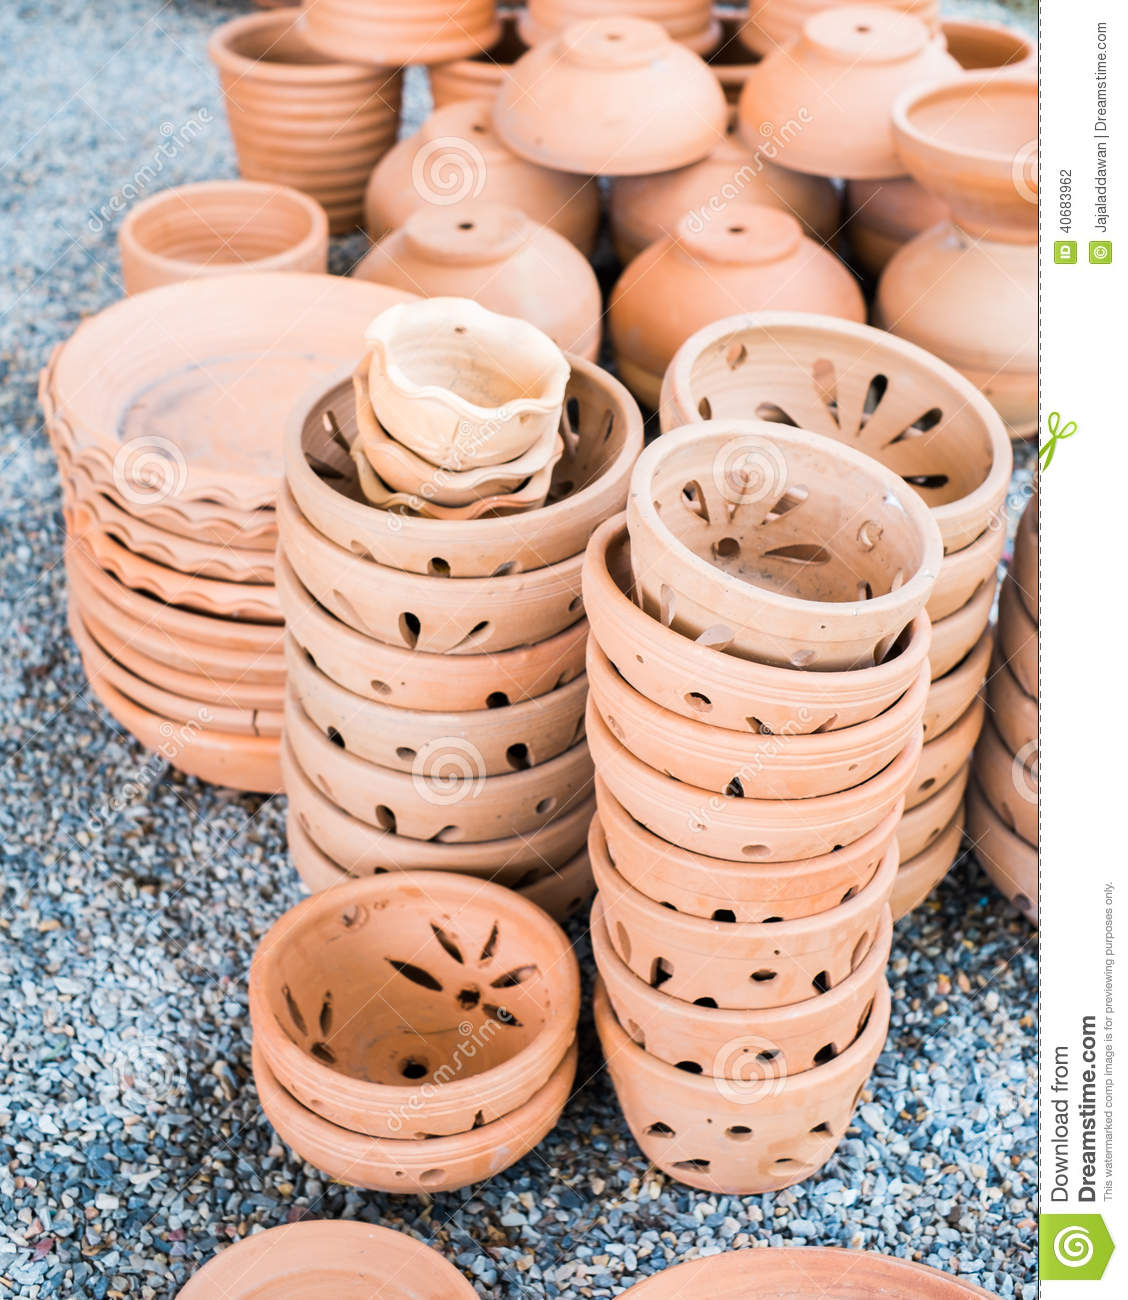 Pile of clay pots for plants